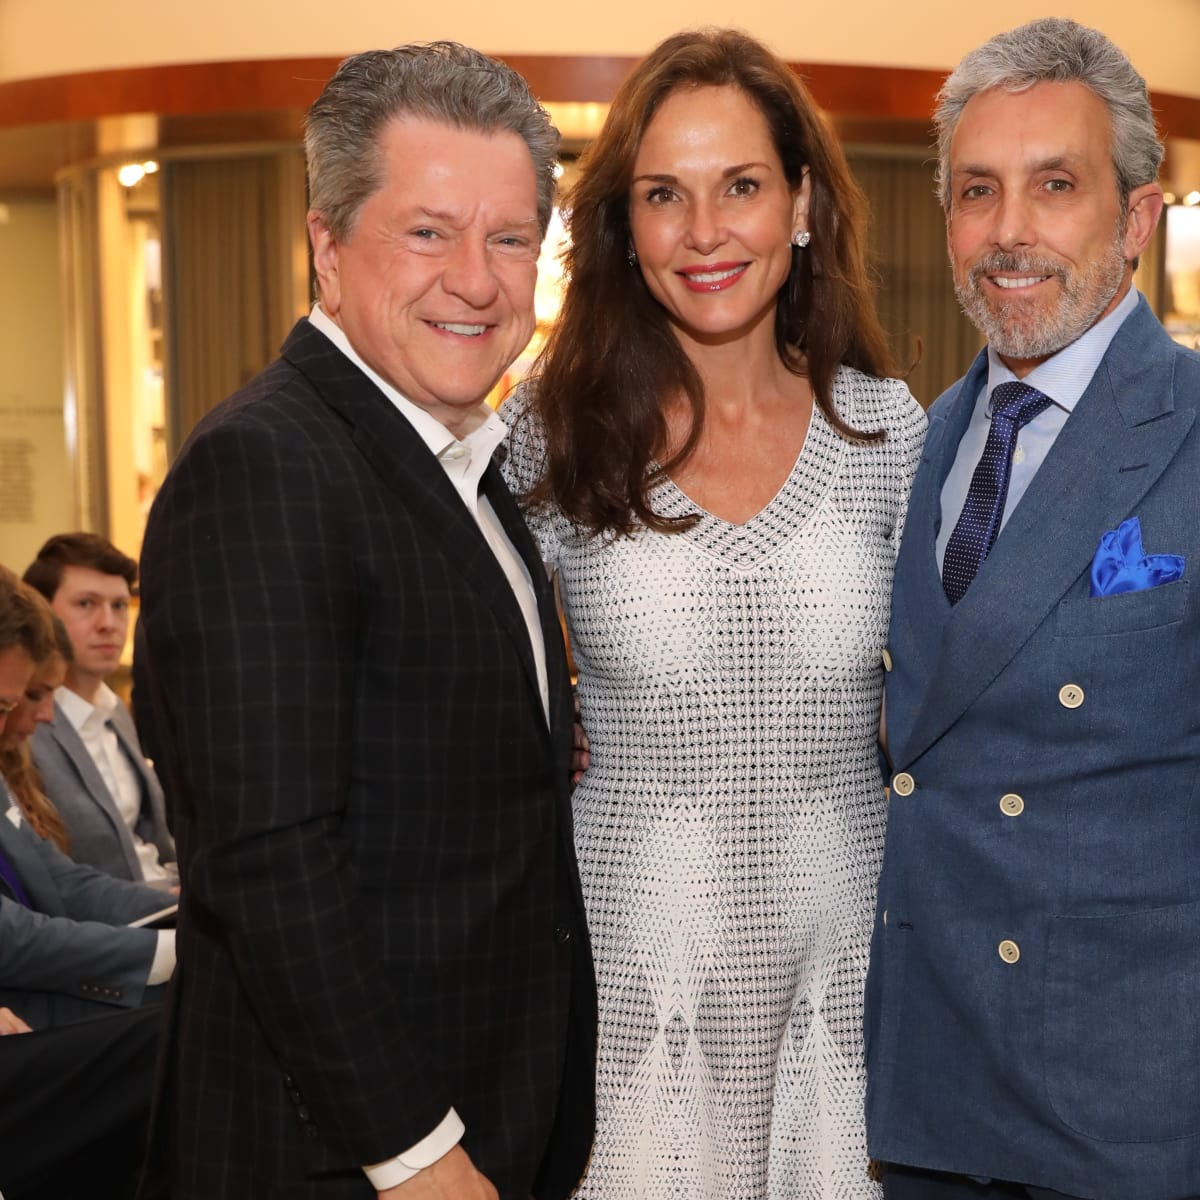 Bill Stubbs, Clo Cohen, Charles Cohen at Decorative Center Spring Market